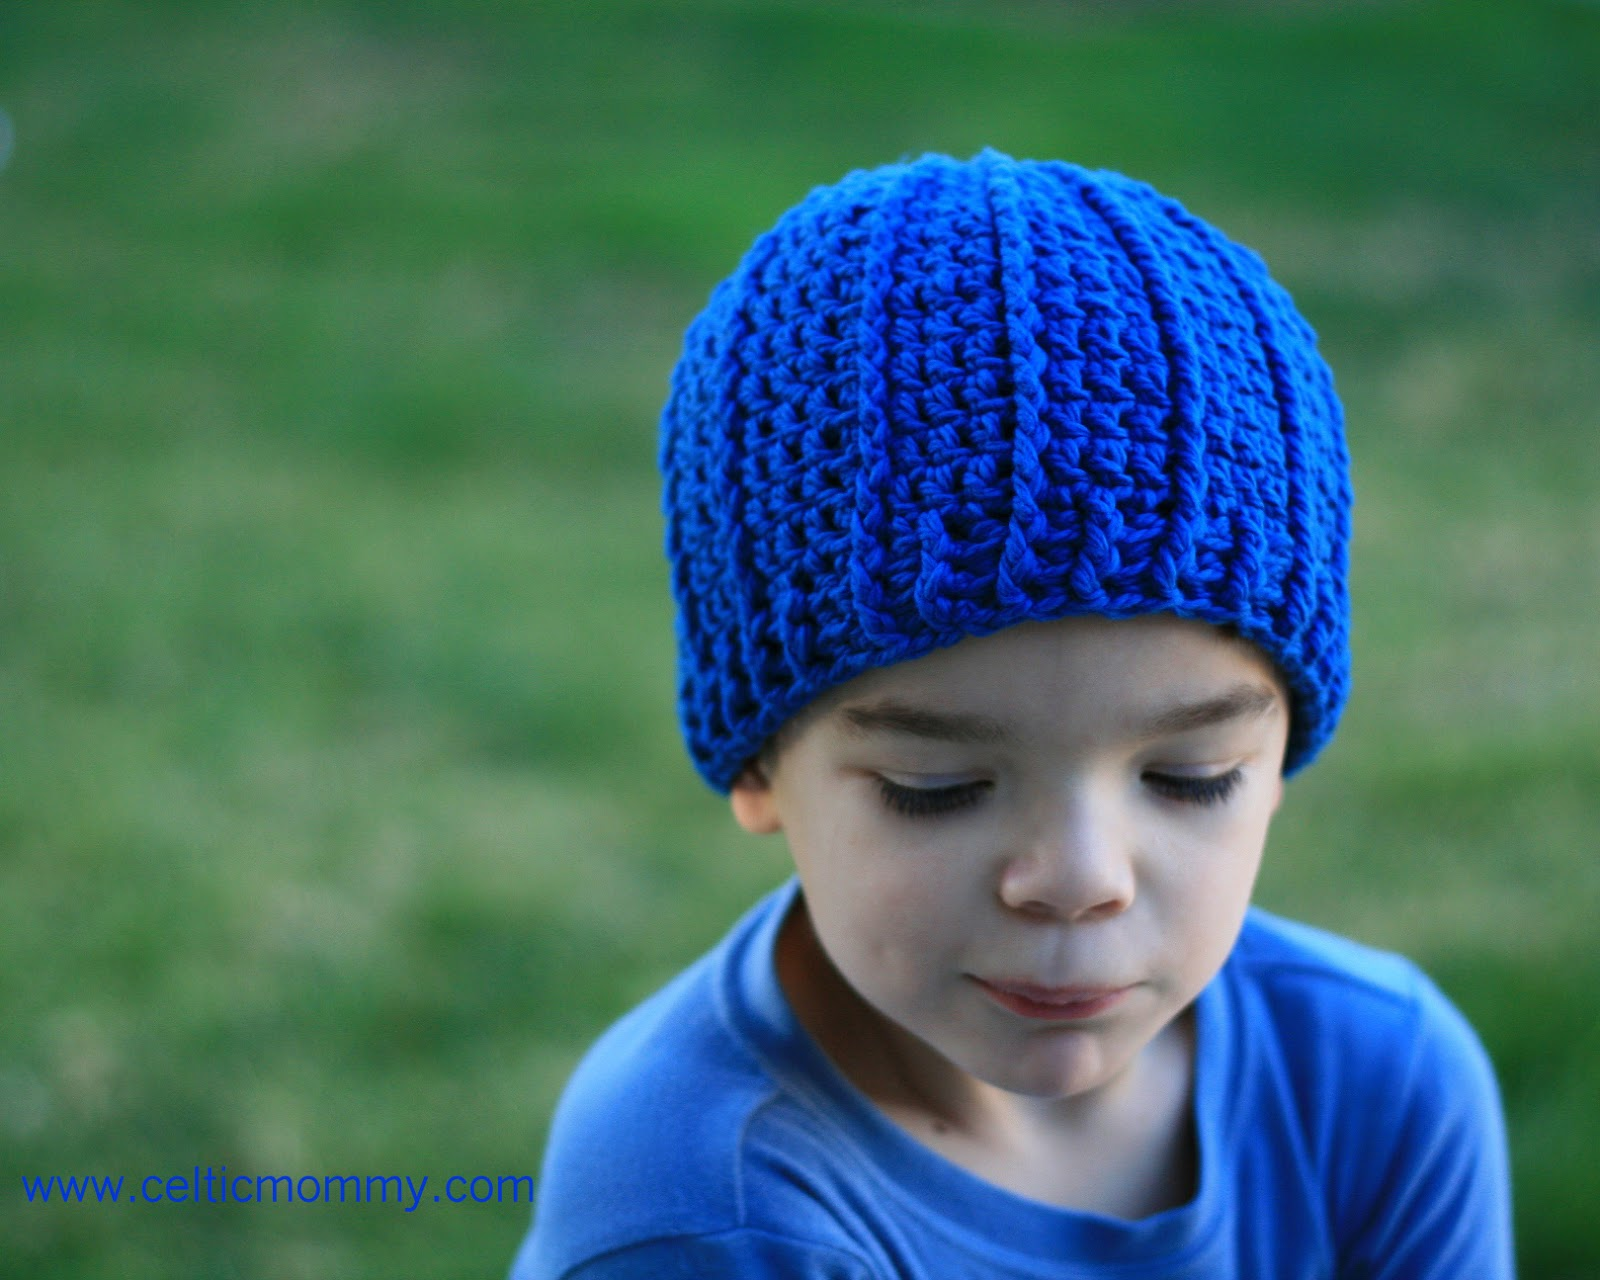 Crochet Patterns Hats For Toddlers : CelticMommy: Free crochet pattern: Rib wrapped cap for ...